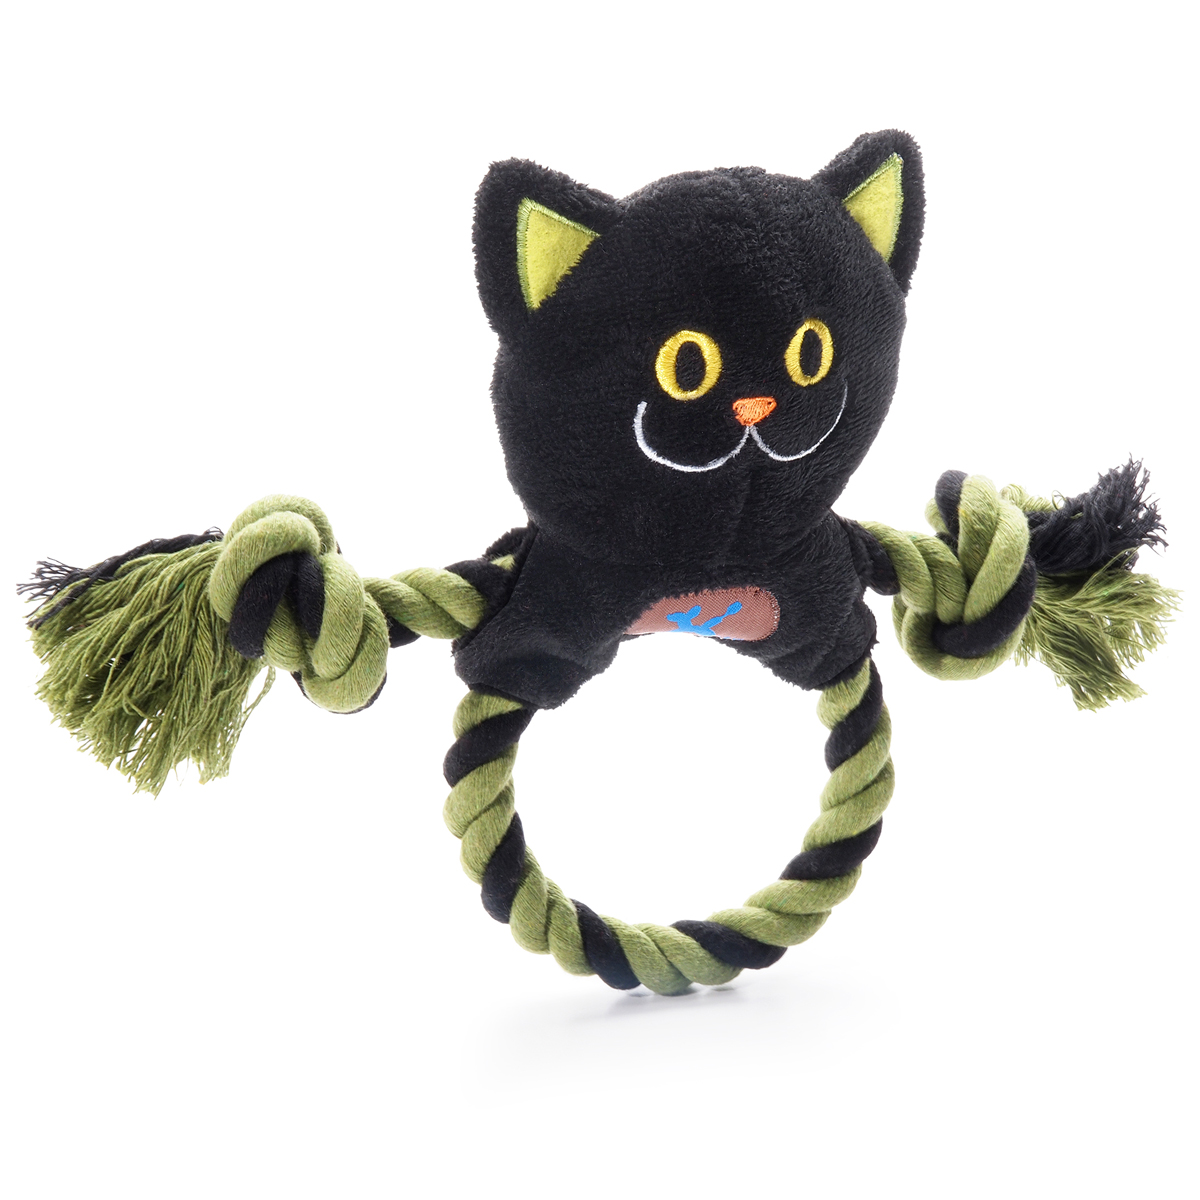 Halloween Ring Toss Dog Toy - Black Cat